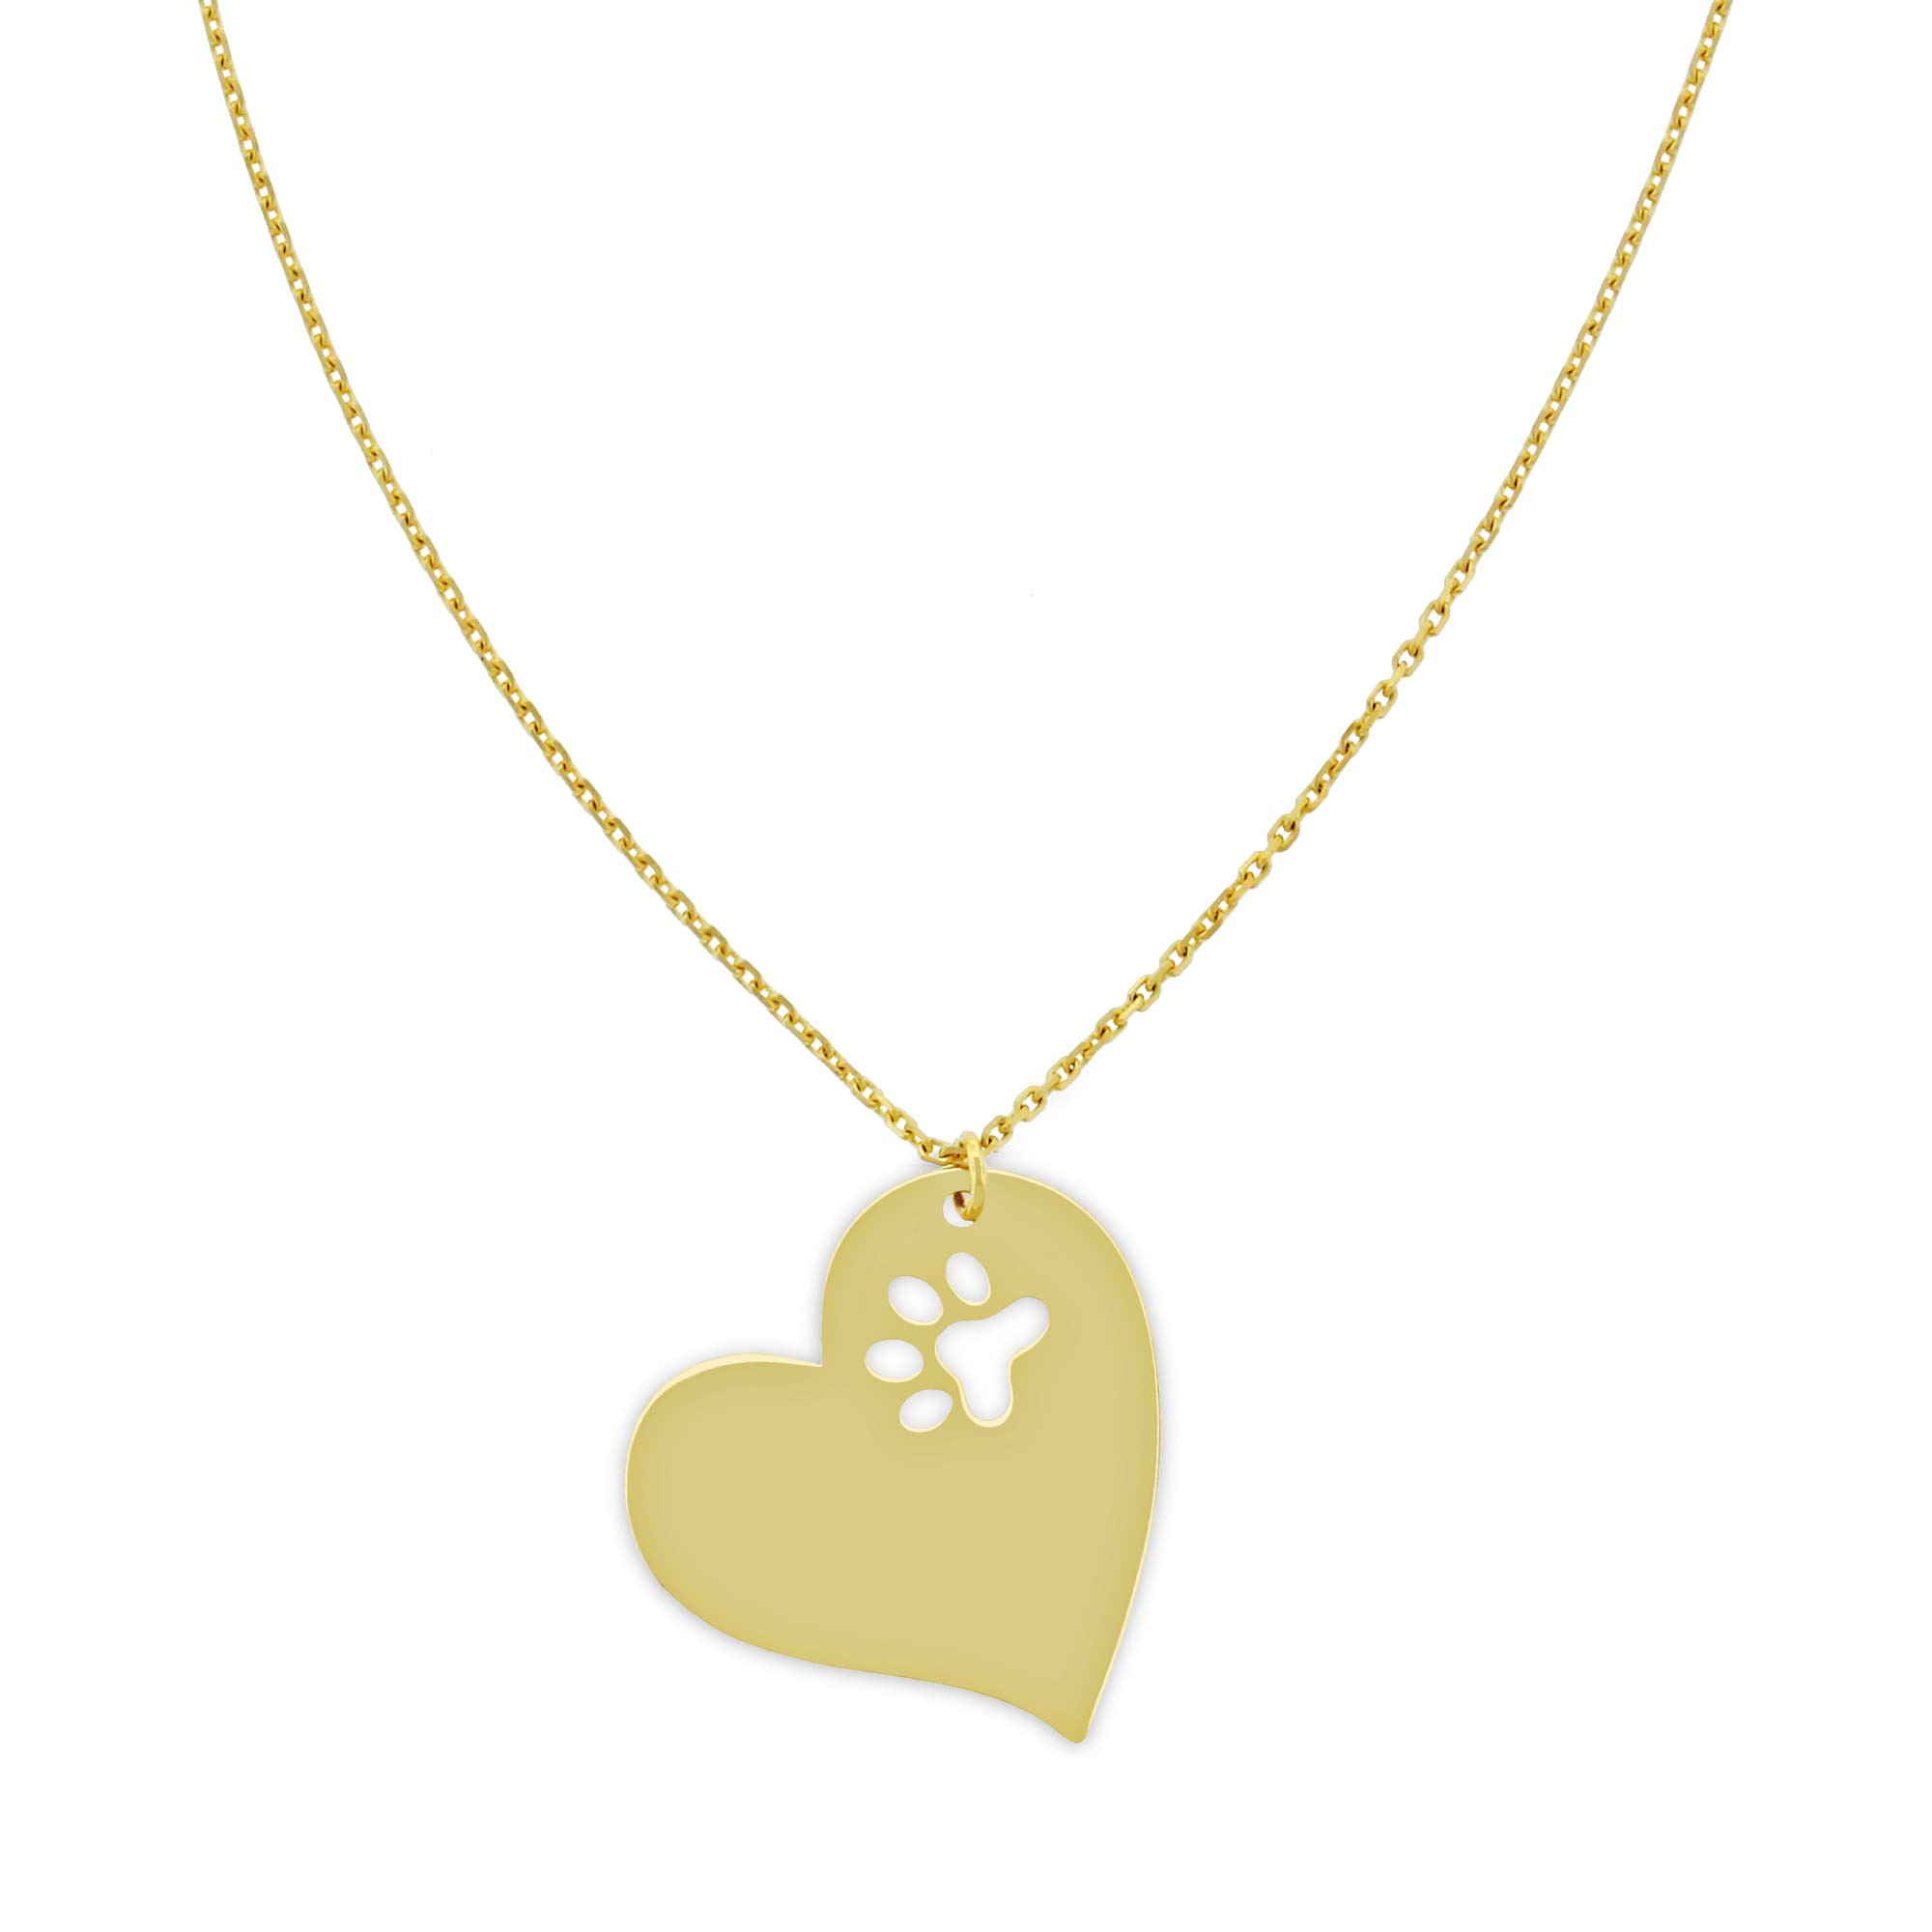 Charm America Gold Dog Paw Inside Heart Adjustable Necklace - 14 Karat Solid Gold by Charm America